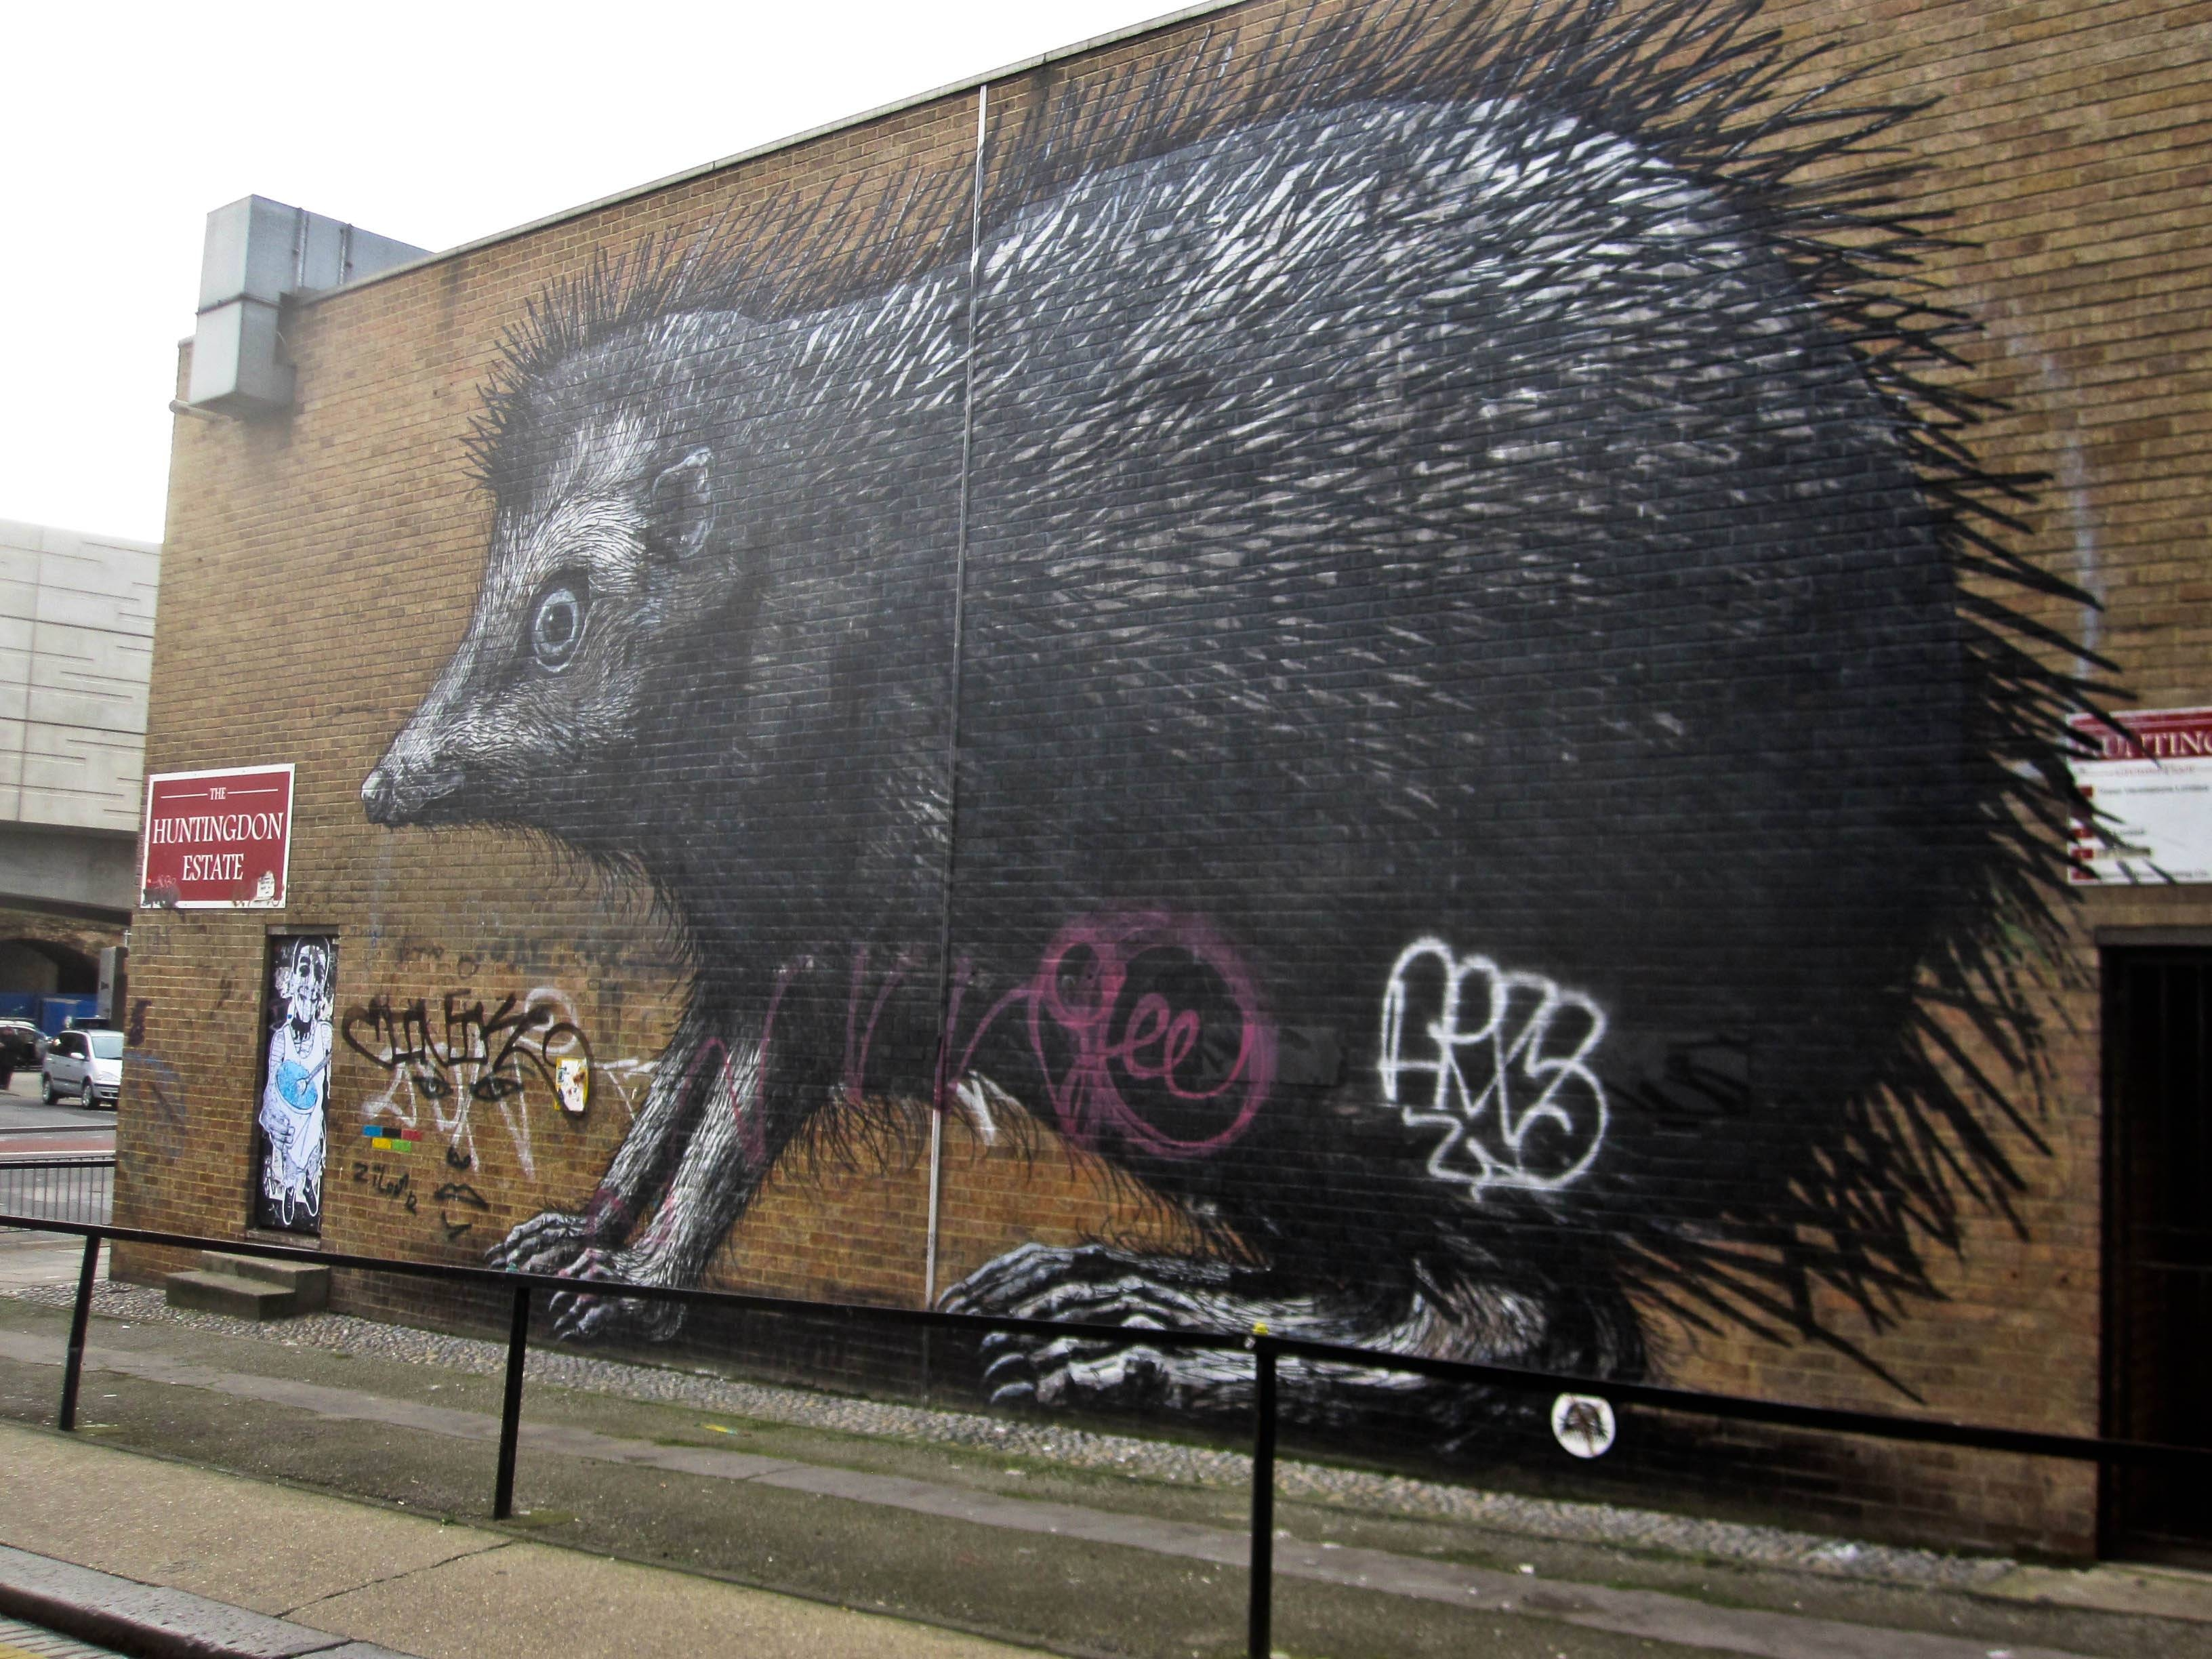 Roa: He's An Animal (On The Street Art Scene) – Trading Voyageur Intended For Most Current London Scene Wall Art (View 18 of 20)